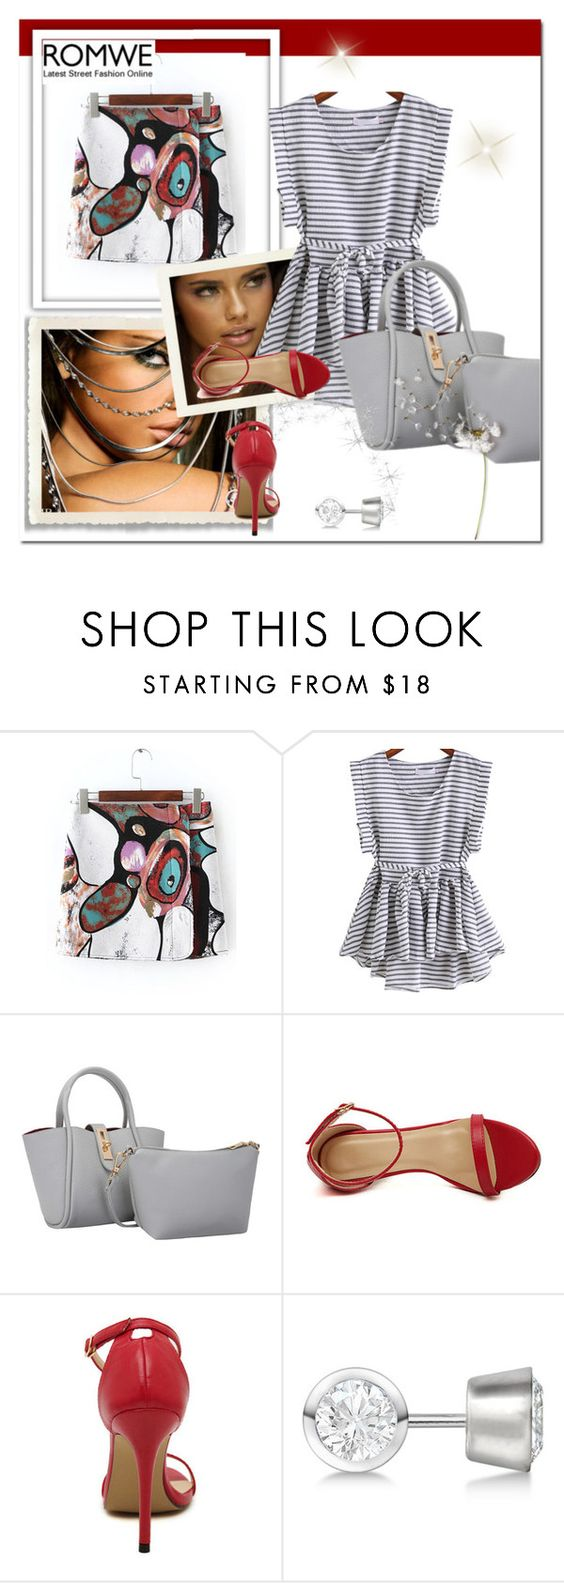 """romwe 8."" by igor89 ❤ liked on Polyvore featuring Versace and romwe"